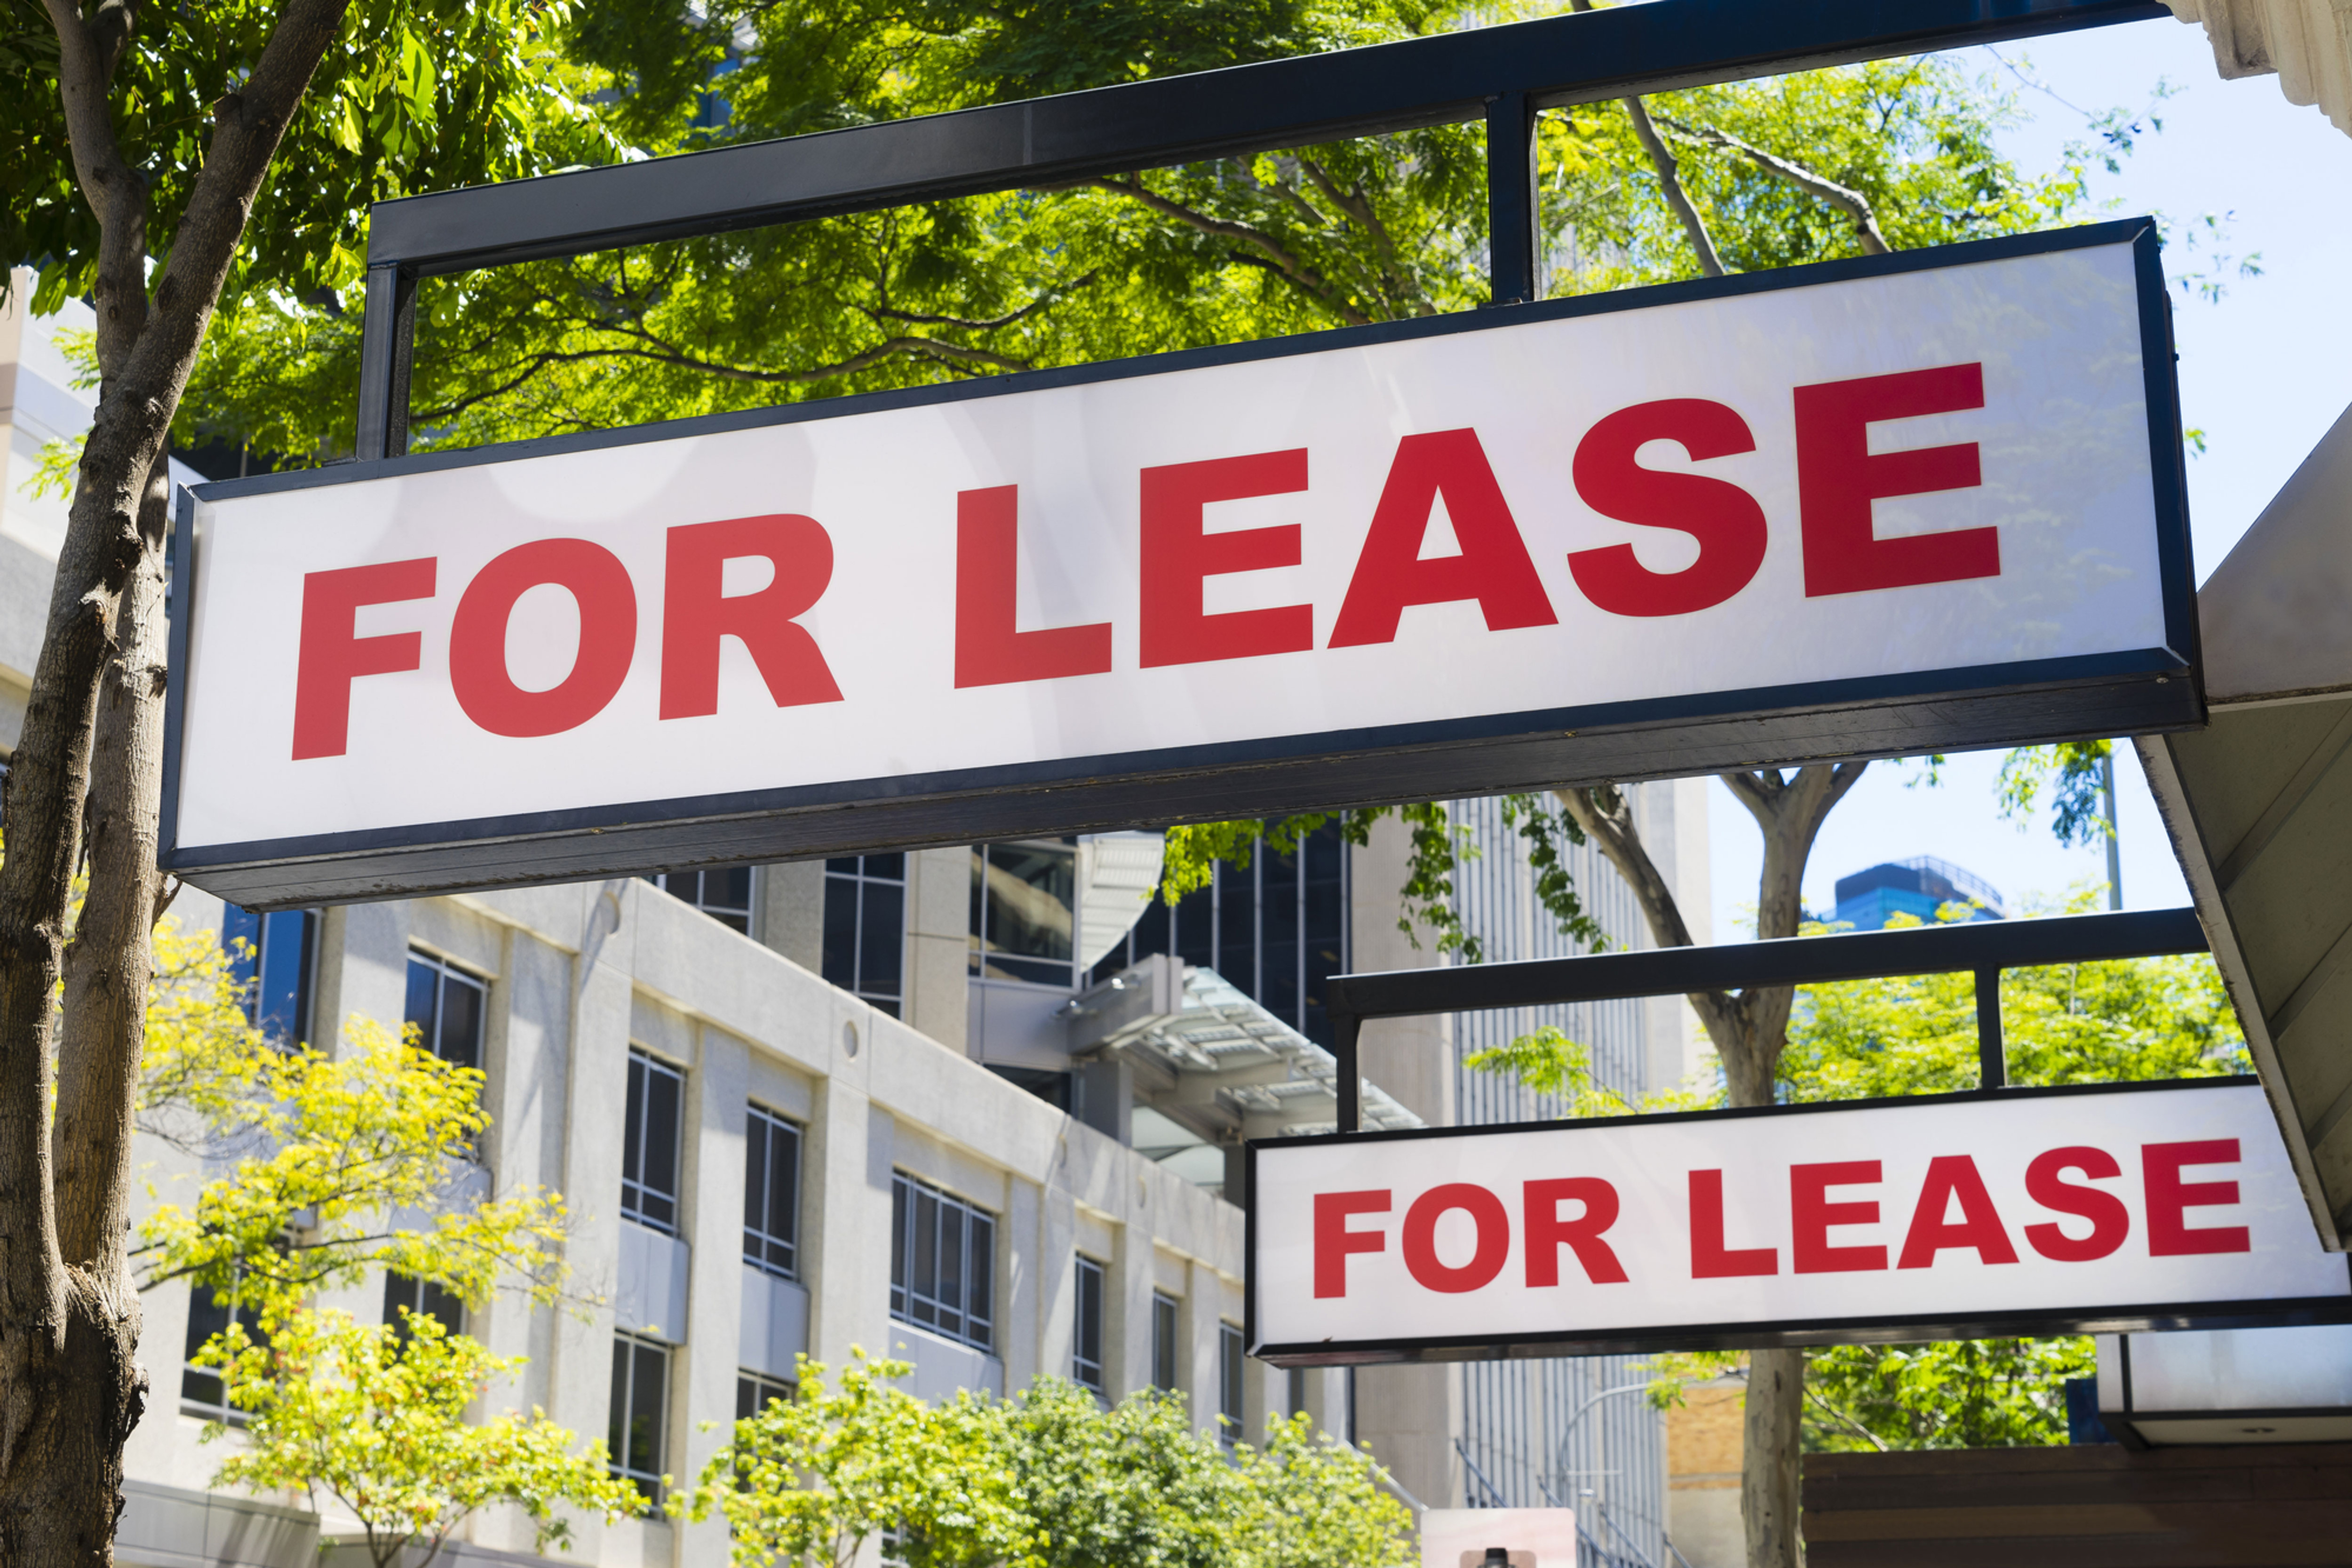 Lease/Rent A Property